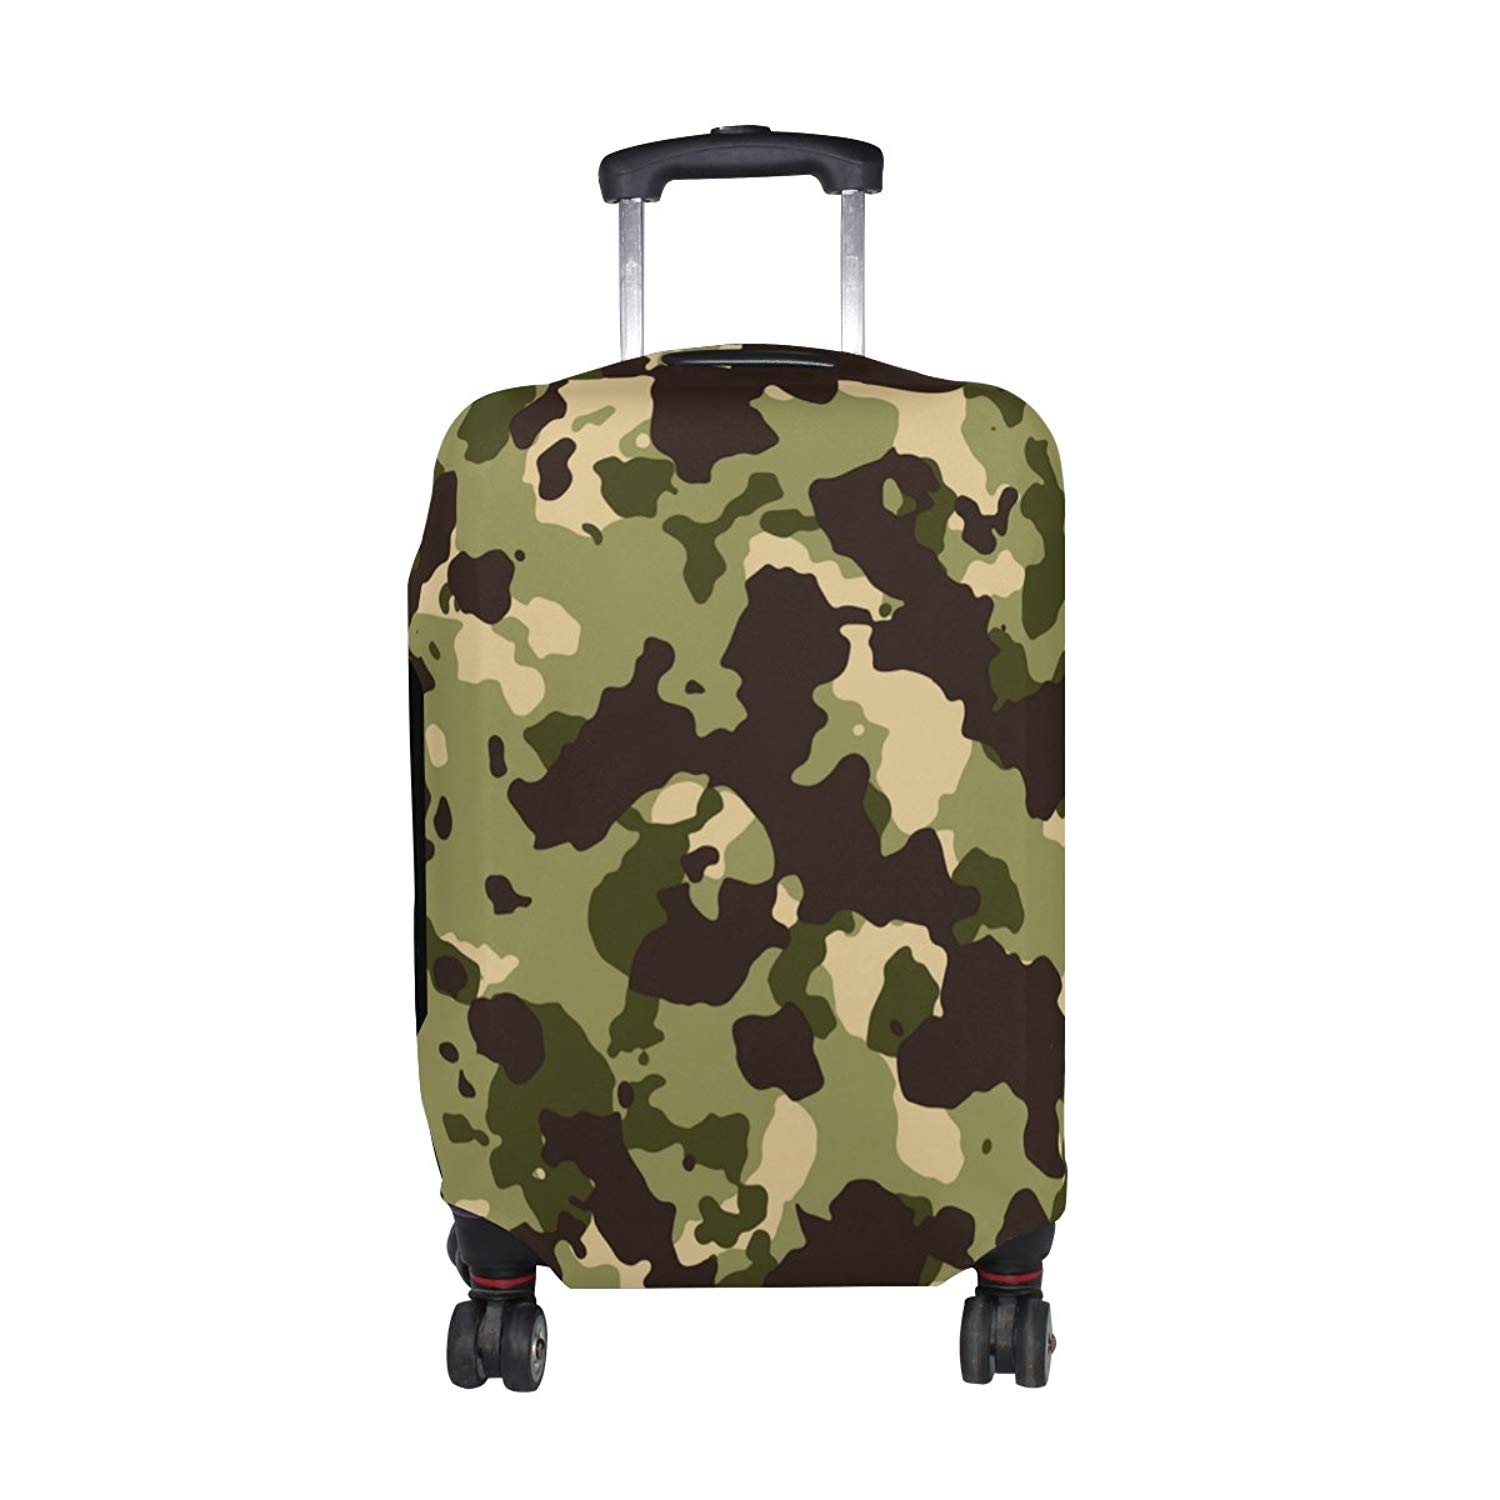 d9cf9604004a Get Quotations · Military Camo Camouflage Pattern Print Travel Luggage  Protector Baggage Suitcase Cover Fits 18-20 Inch